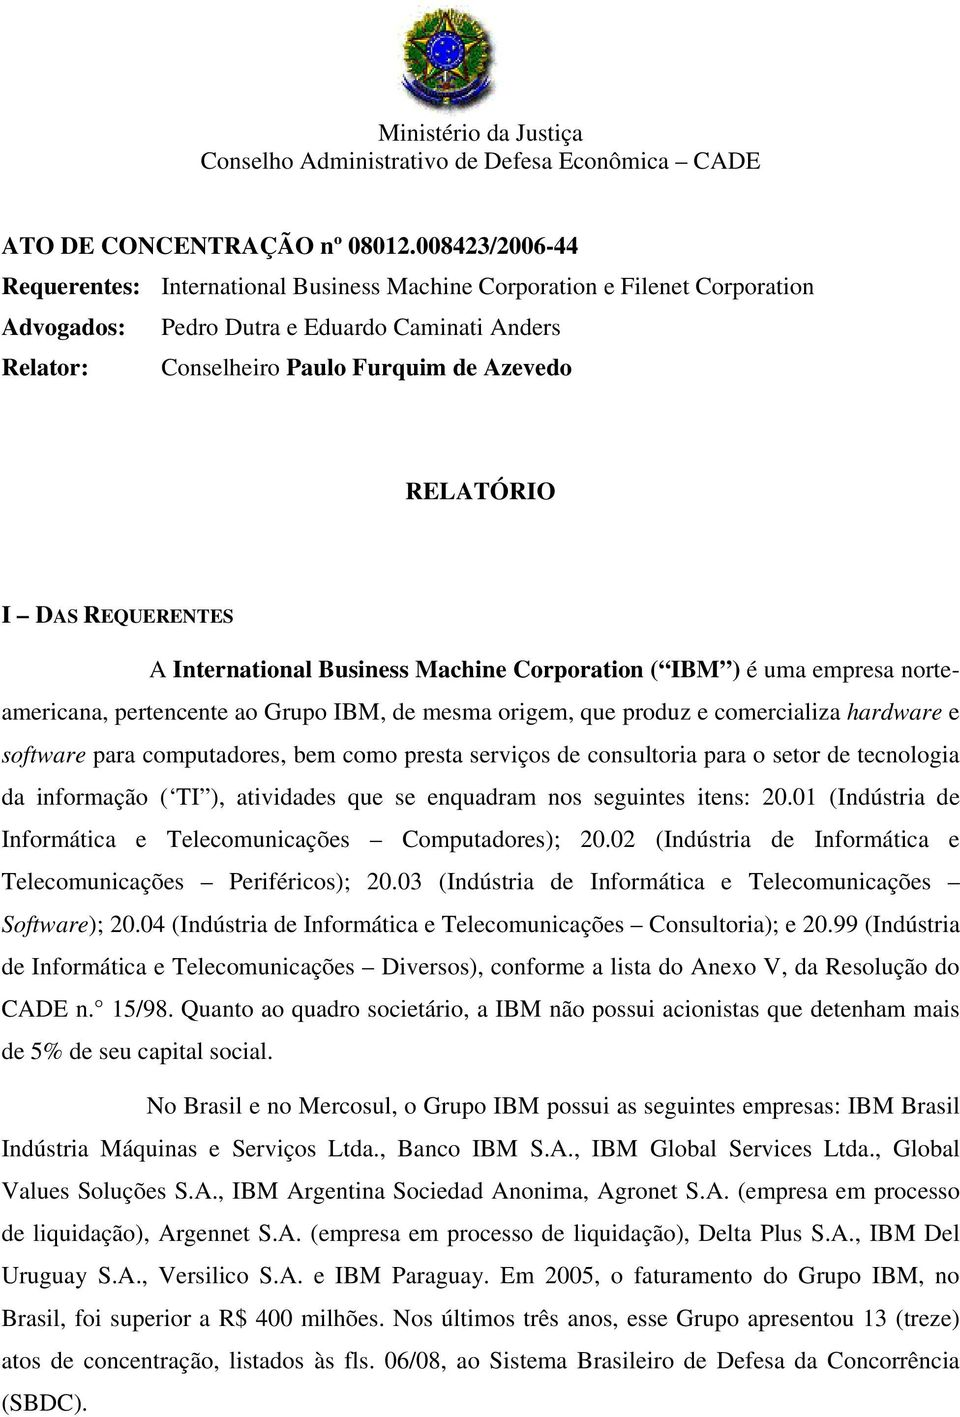 DAS REQUERENTES A International Business Machine Corporation ( IBM ) é uma empresa norteamericana, pertencente ao Grupo IBM, de mesma origem, que produz e comercializa hardware e software para